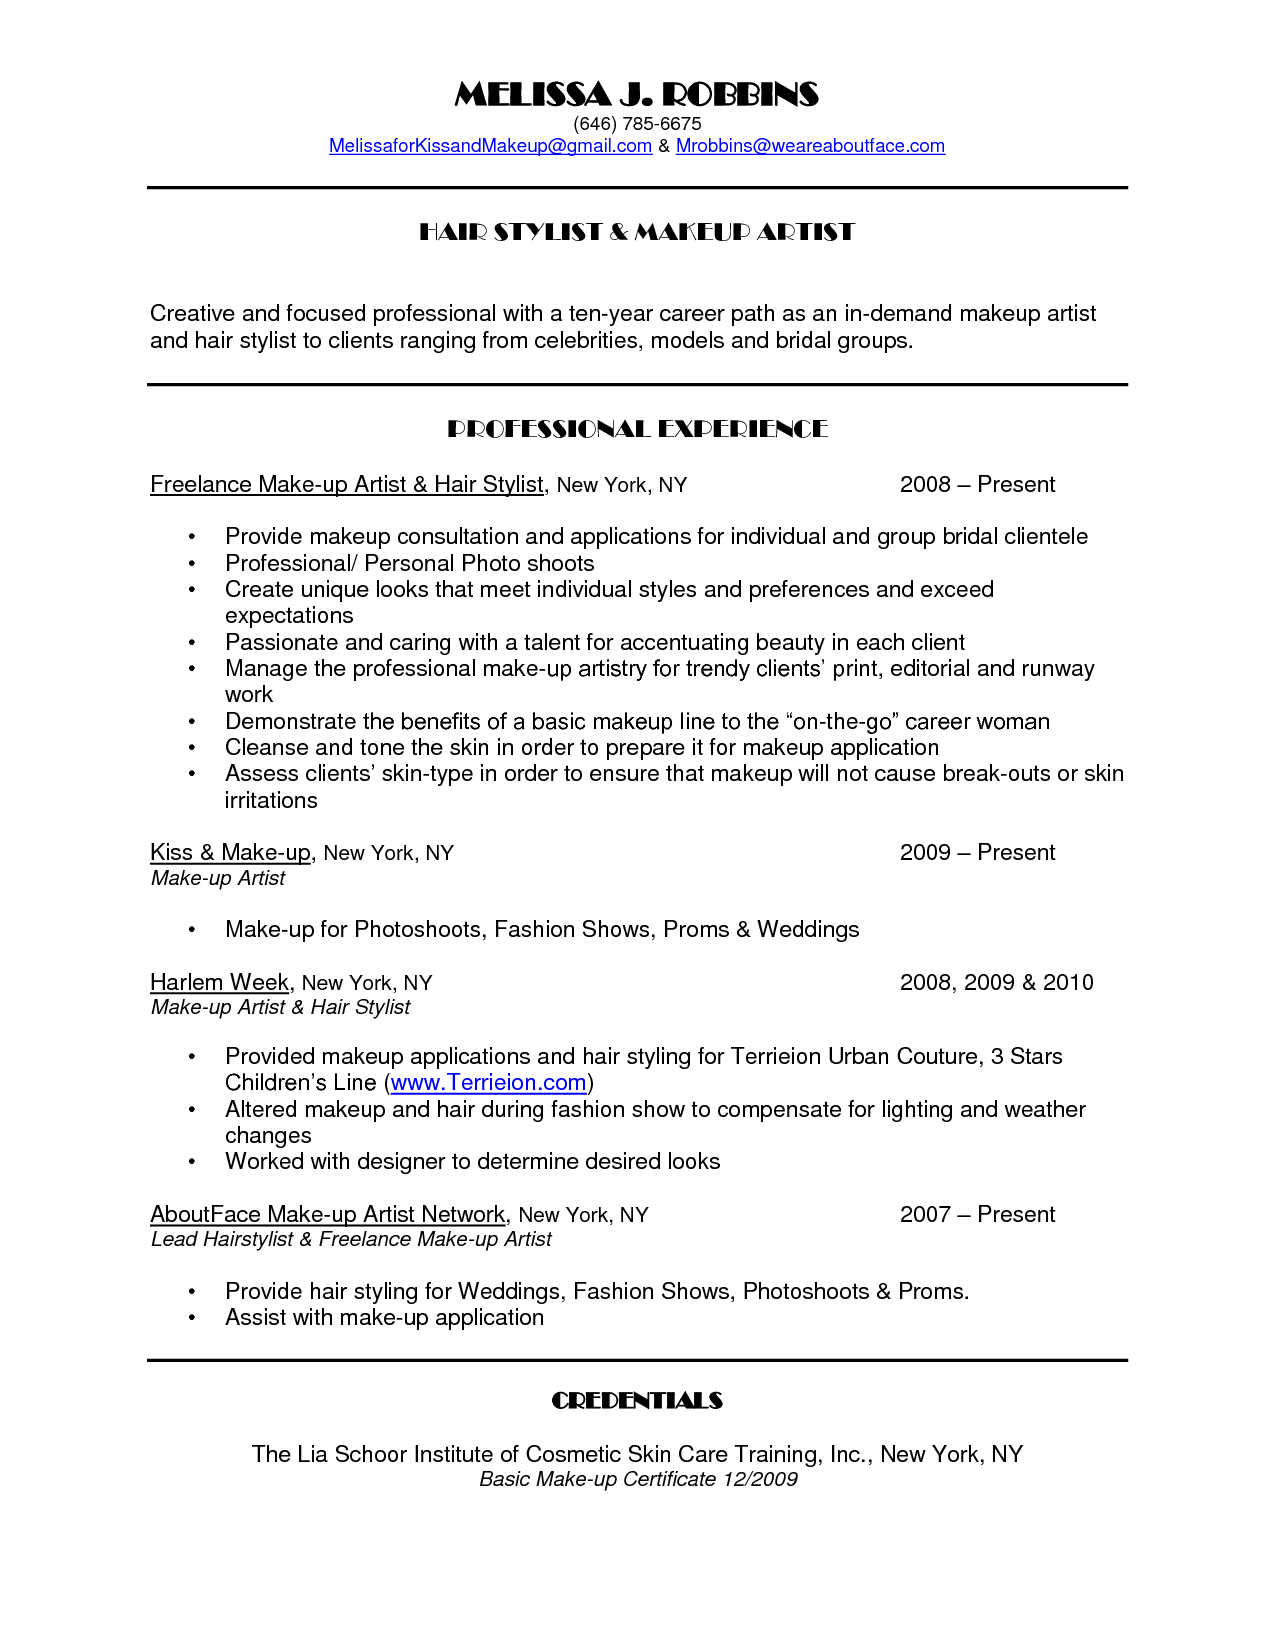 Hair Stylist Resume Template Free Httpwwwresumecareerinfo - Free hair stylist resume templates